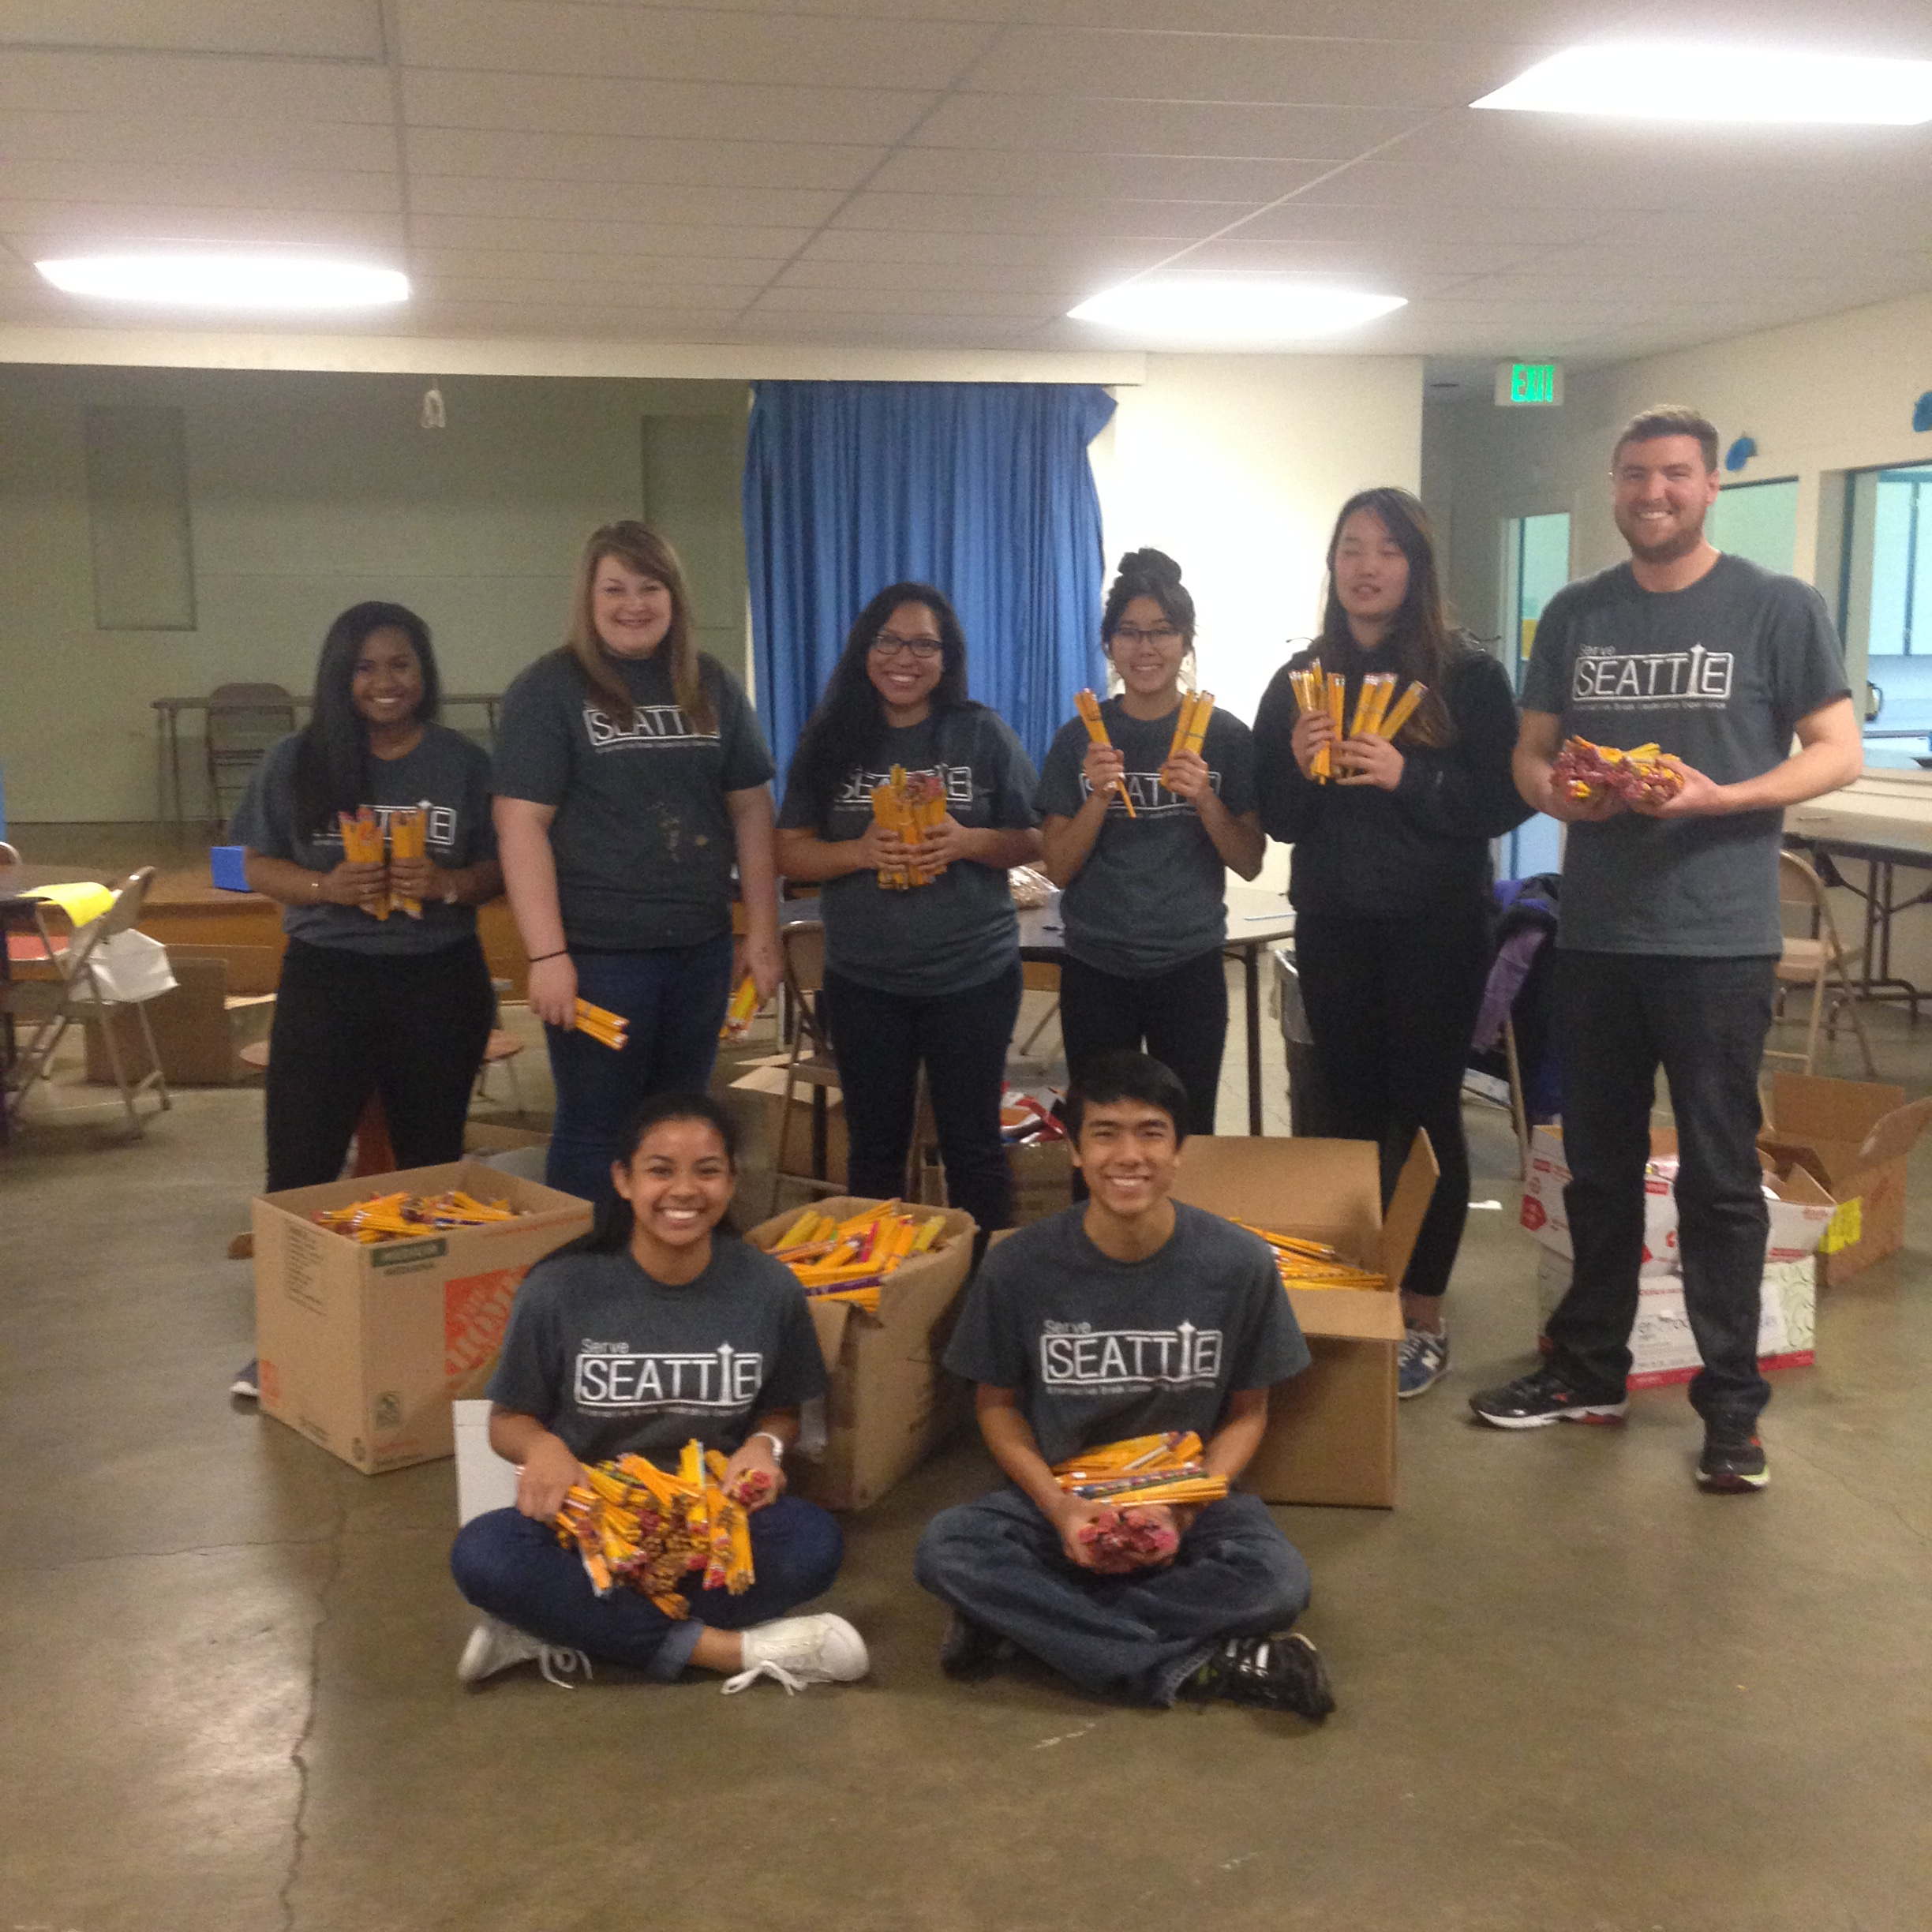 Two weeks ago a group of students from Concordia University in Portland finished off their week of service with Project Cool, sorting and counting supplies as we prepare for our summer volunteer days.  See below for more details.